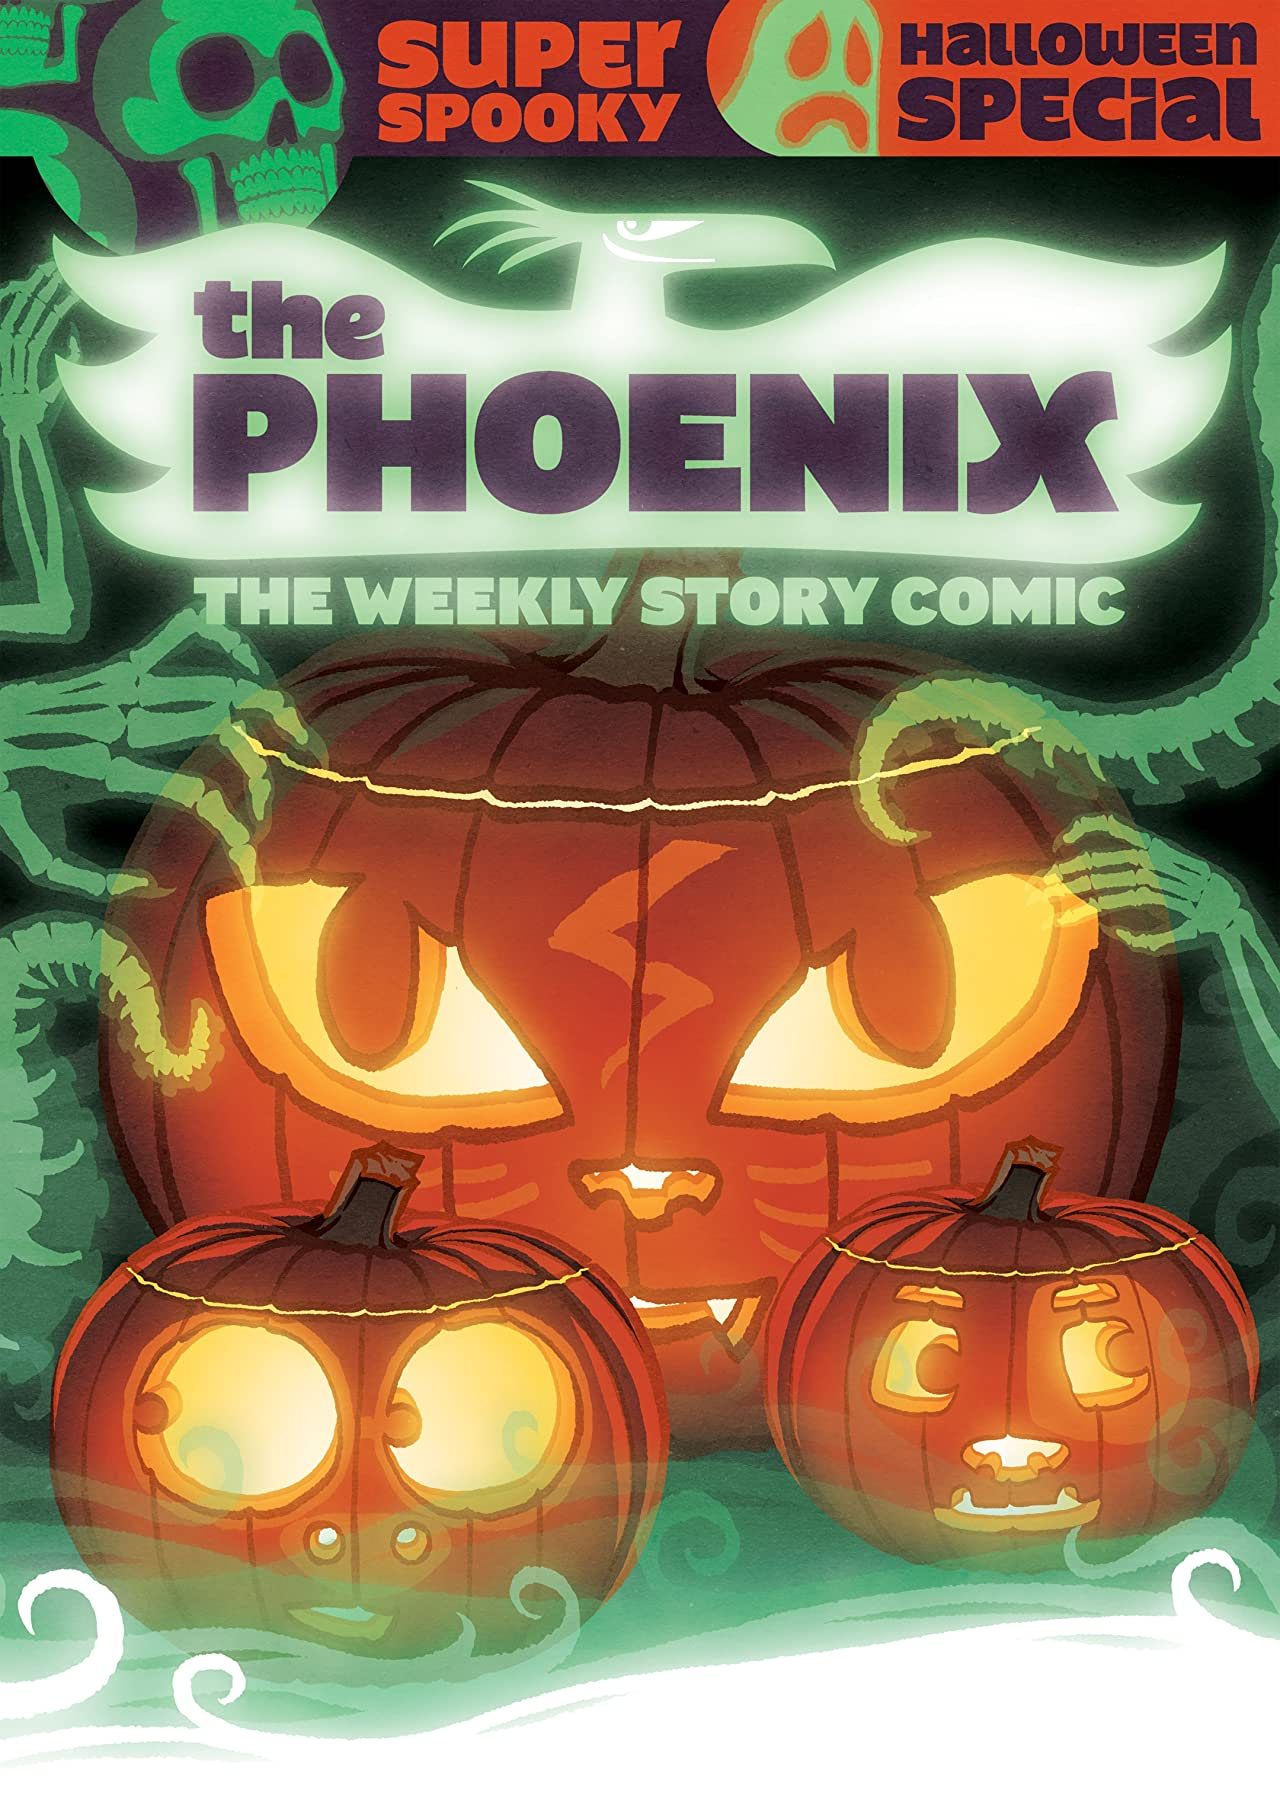 The Phoenix #95: The Weekly Story Comic